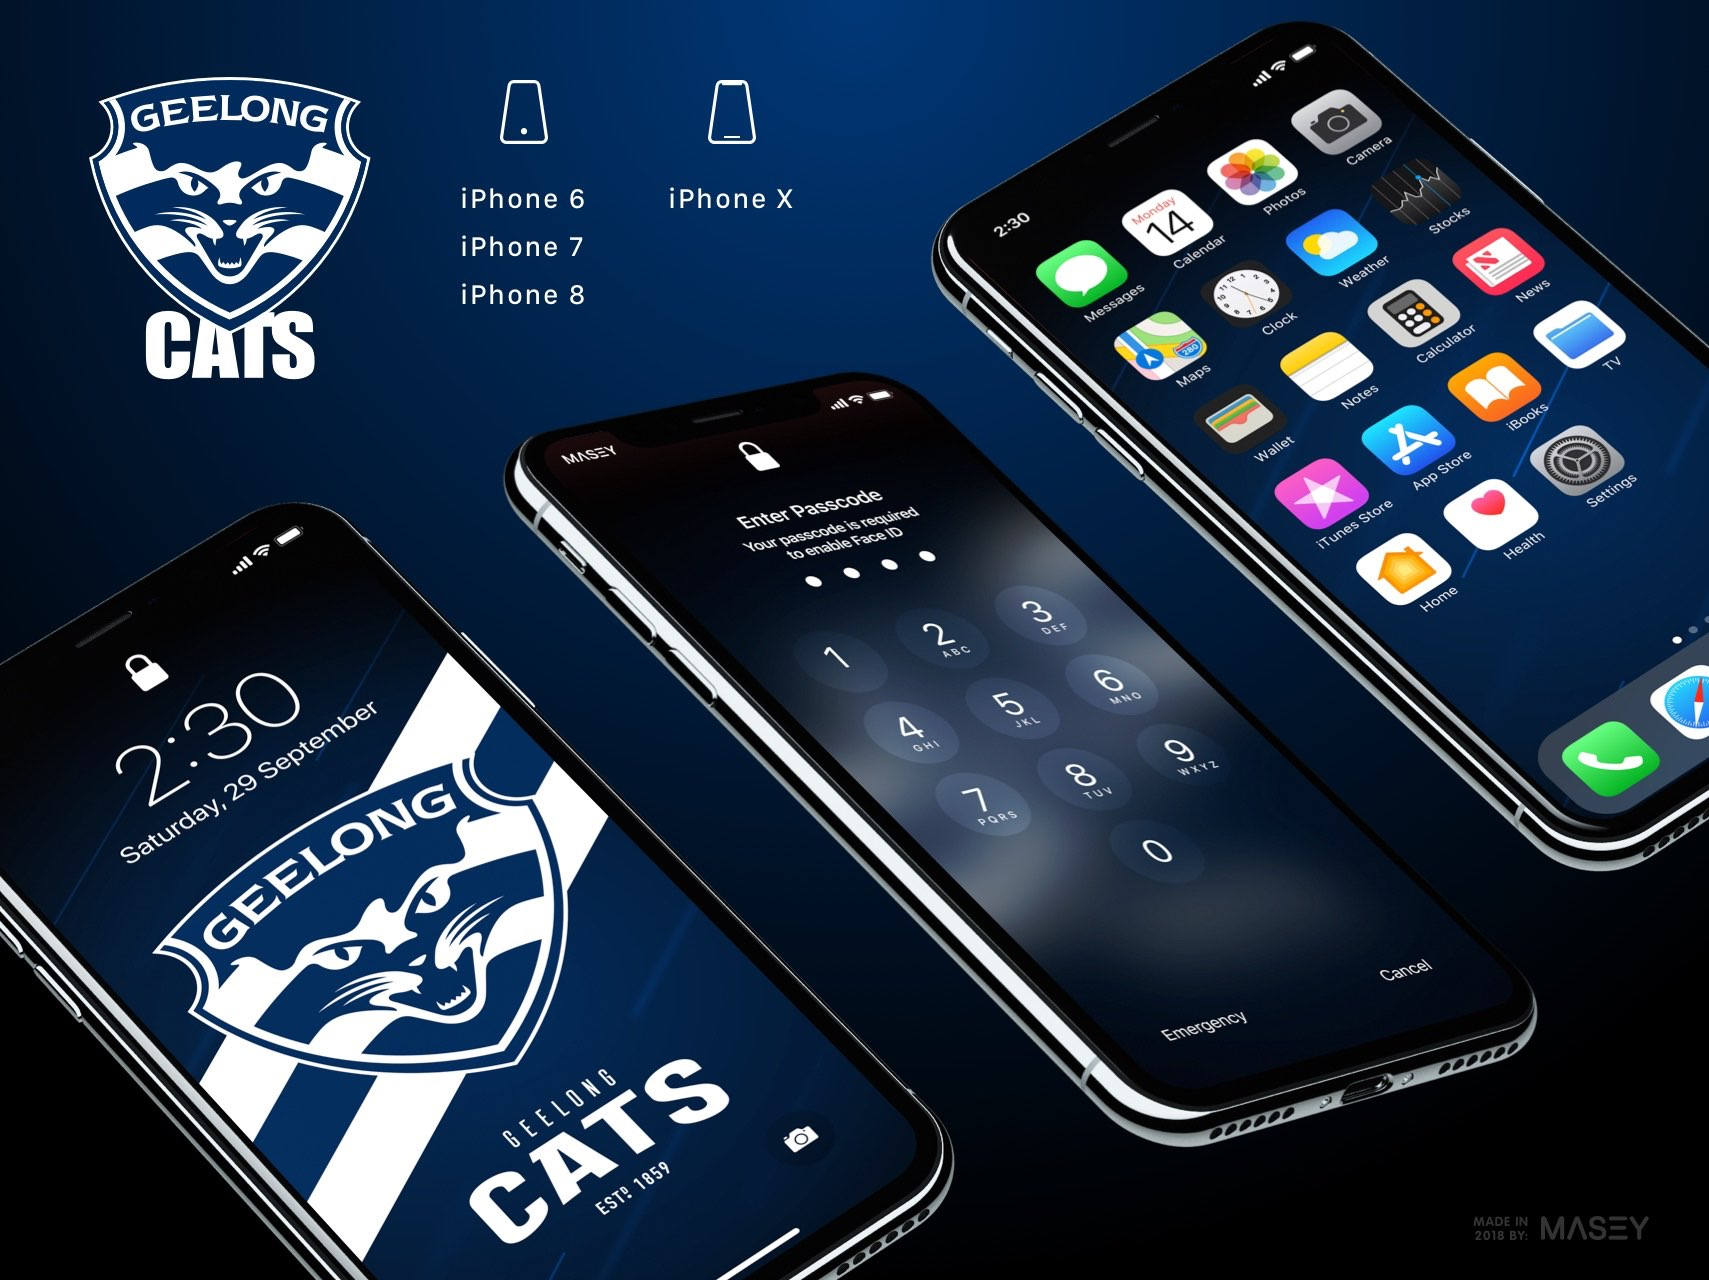 Geelong Cats iPhone Wallpaper